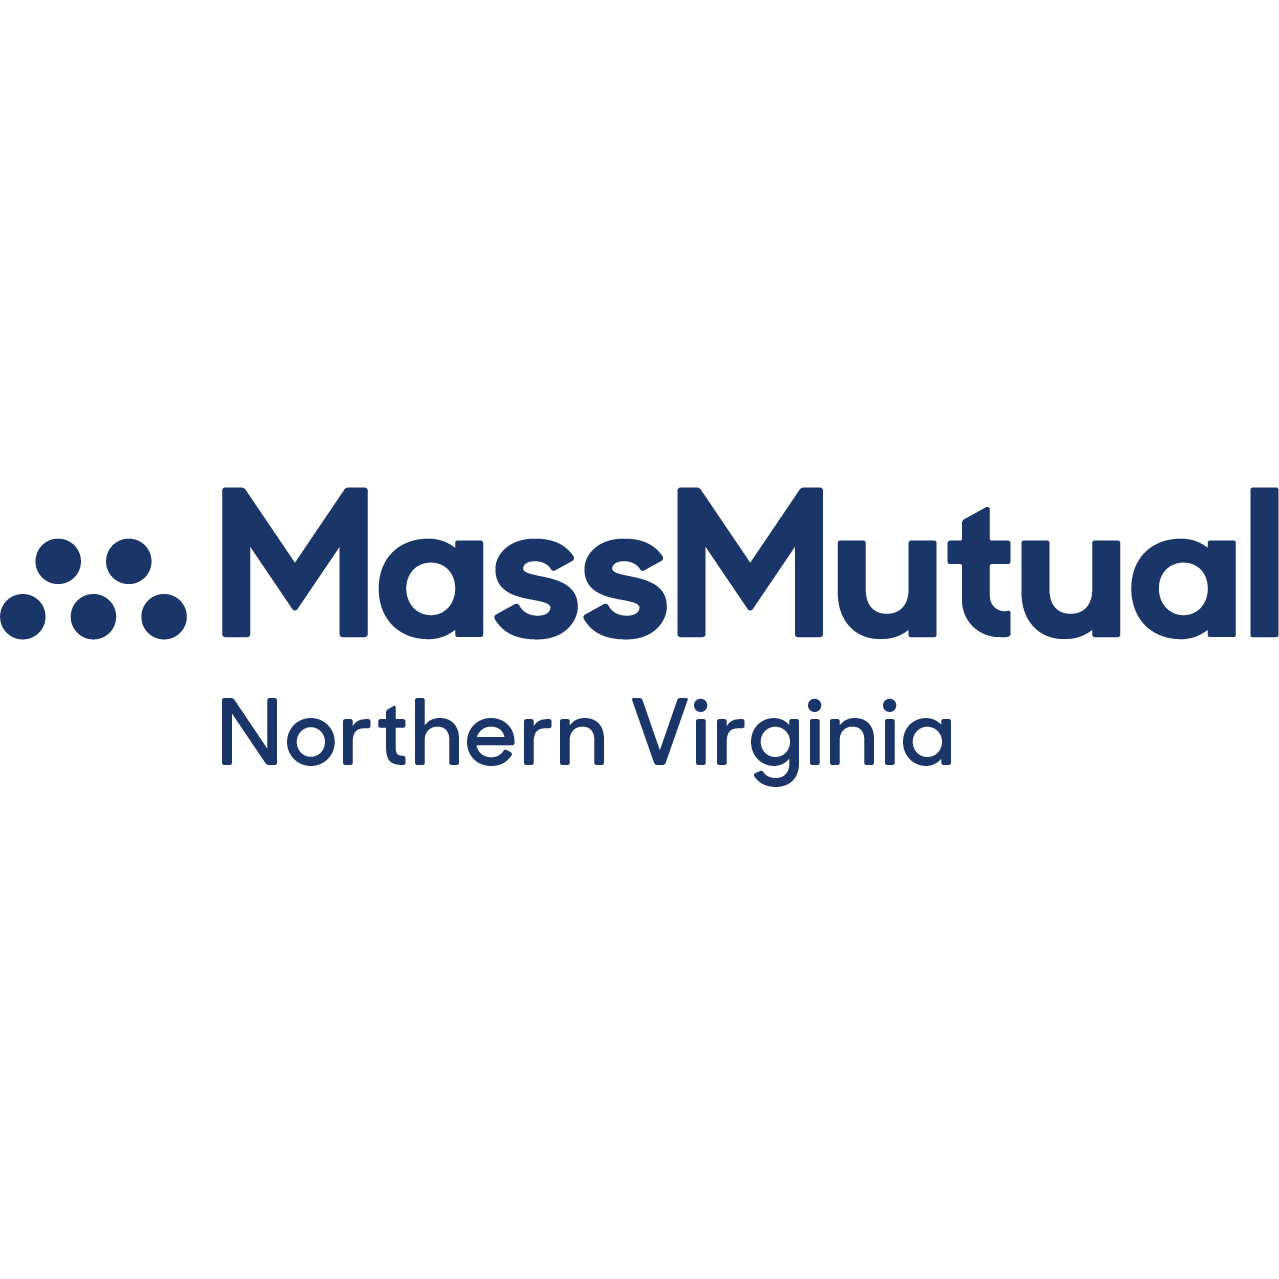 MassMutual Northern Virginia